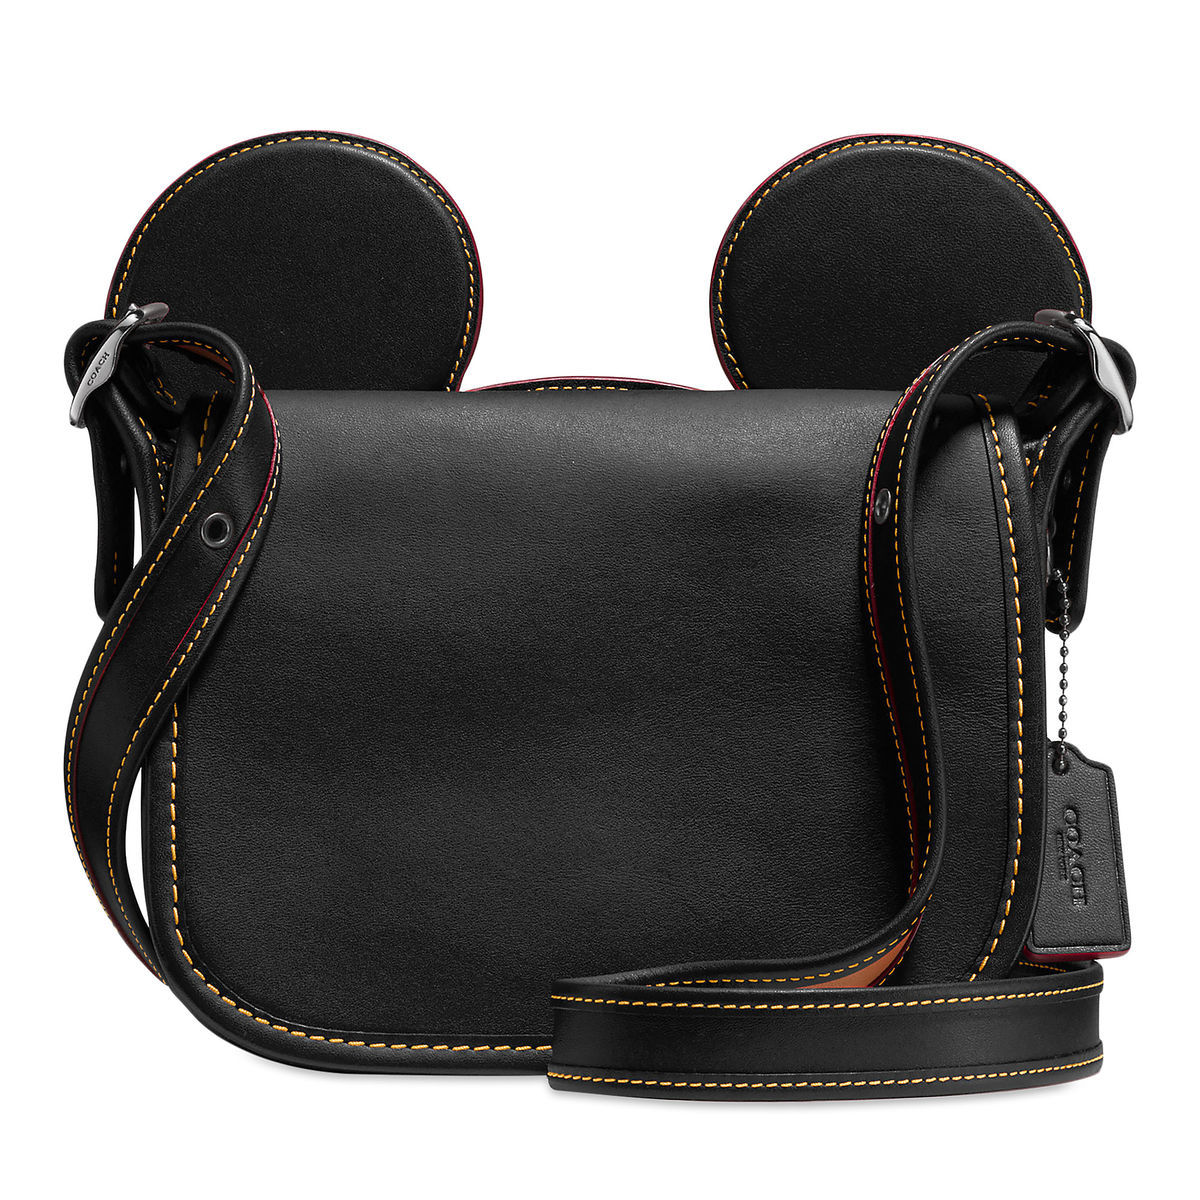 Product Image Of Mickey Mouse Ears Patricia Leather Saddle Bag By Coach Black 1